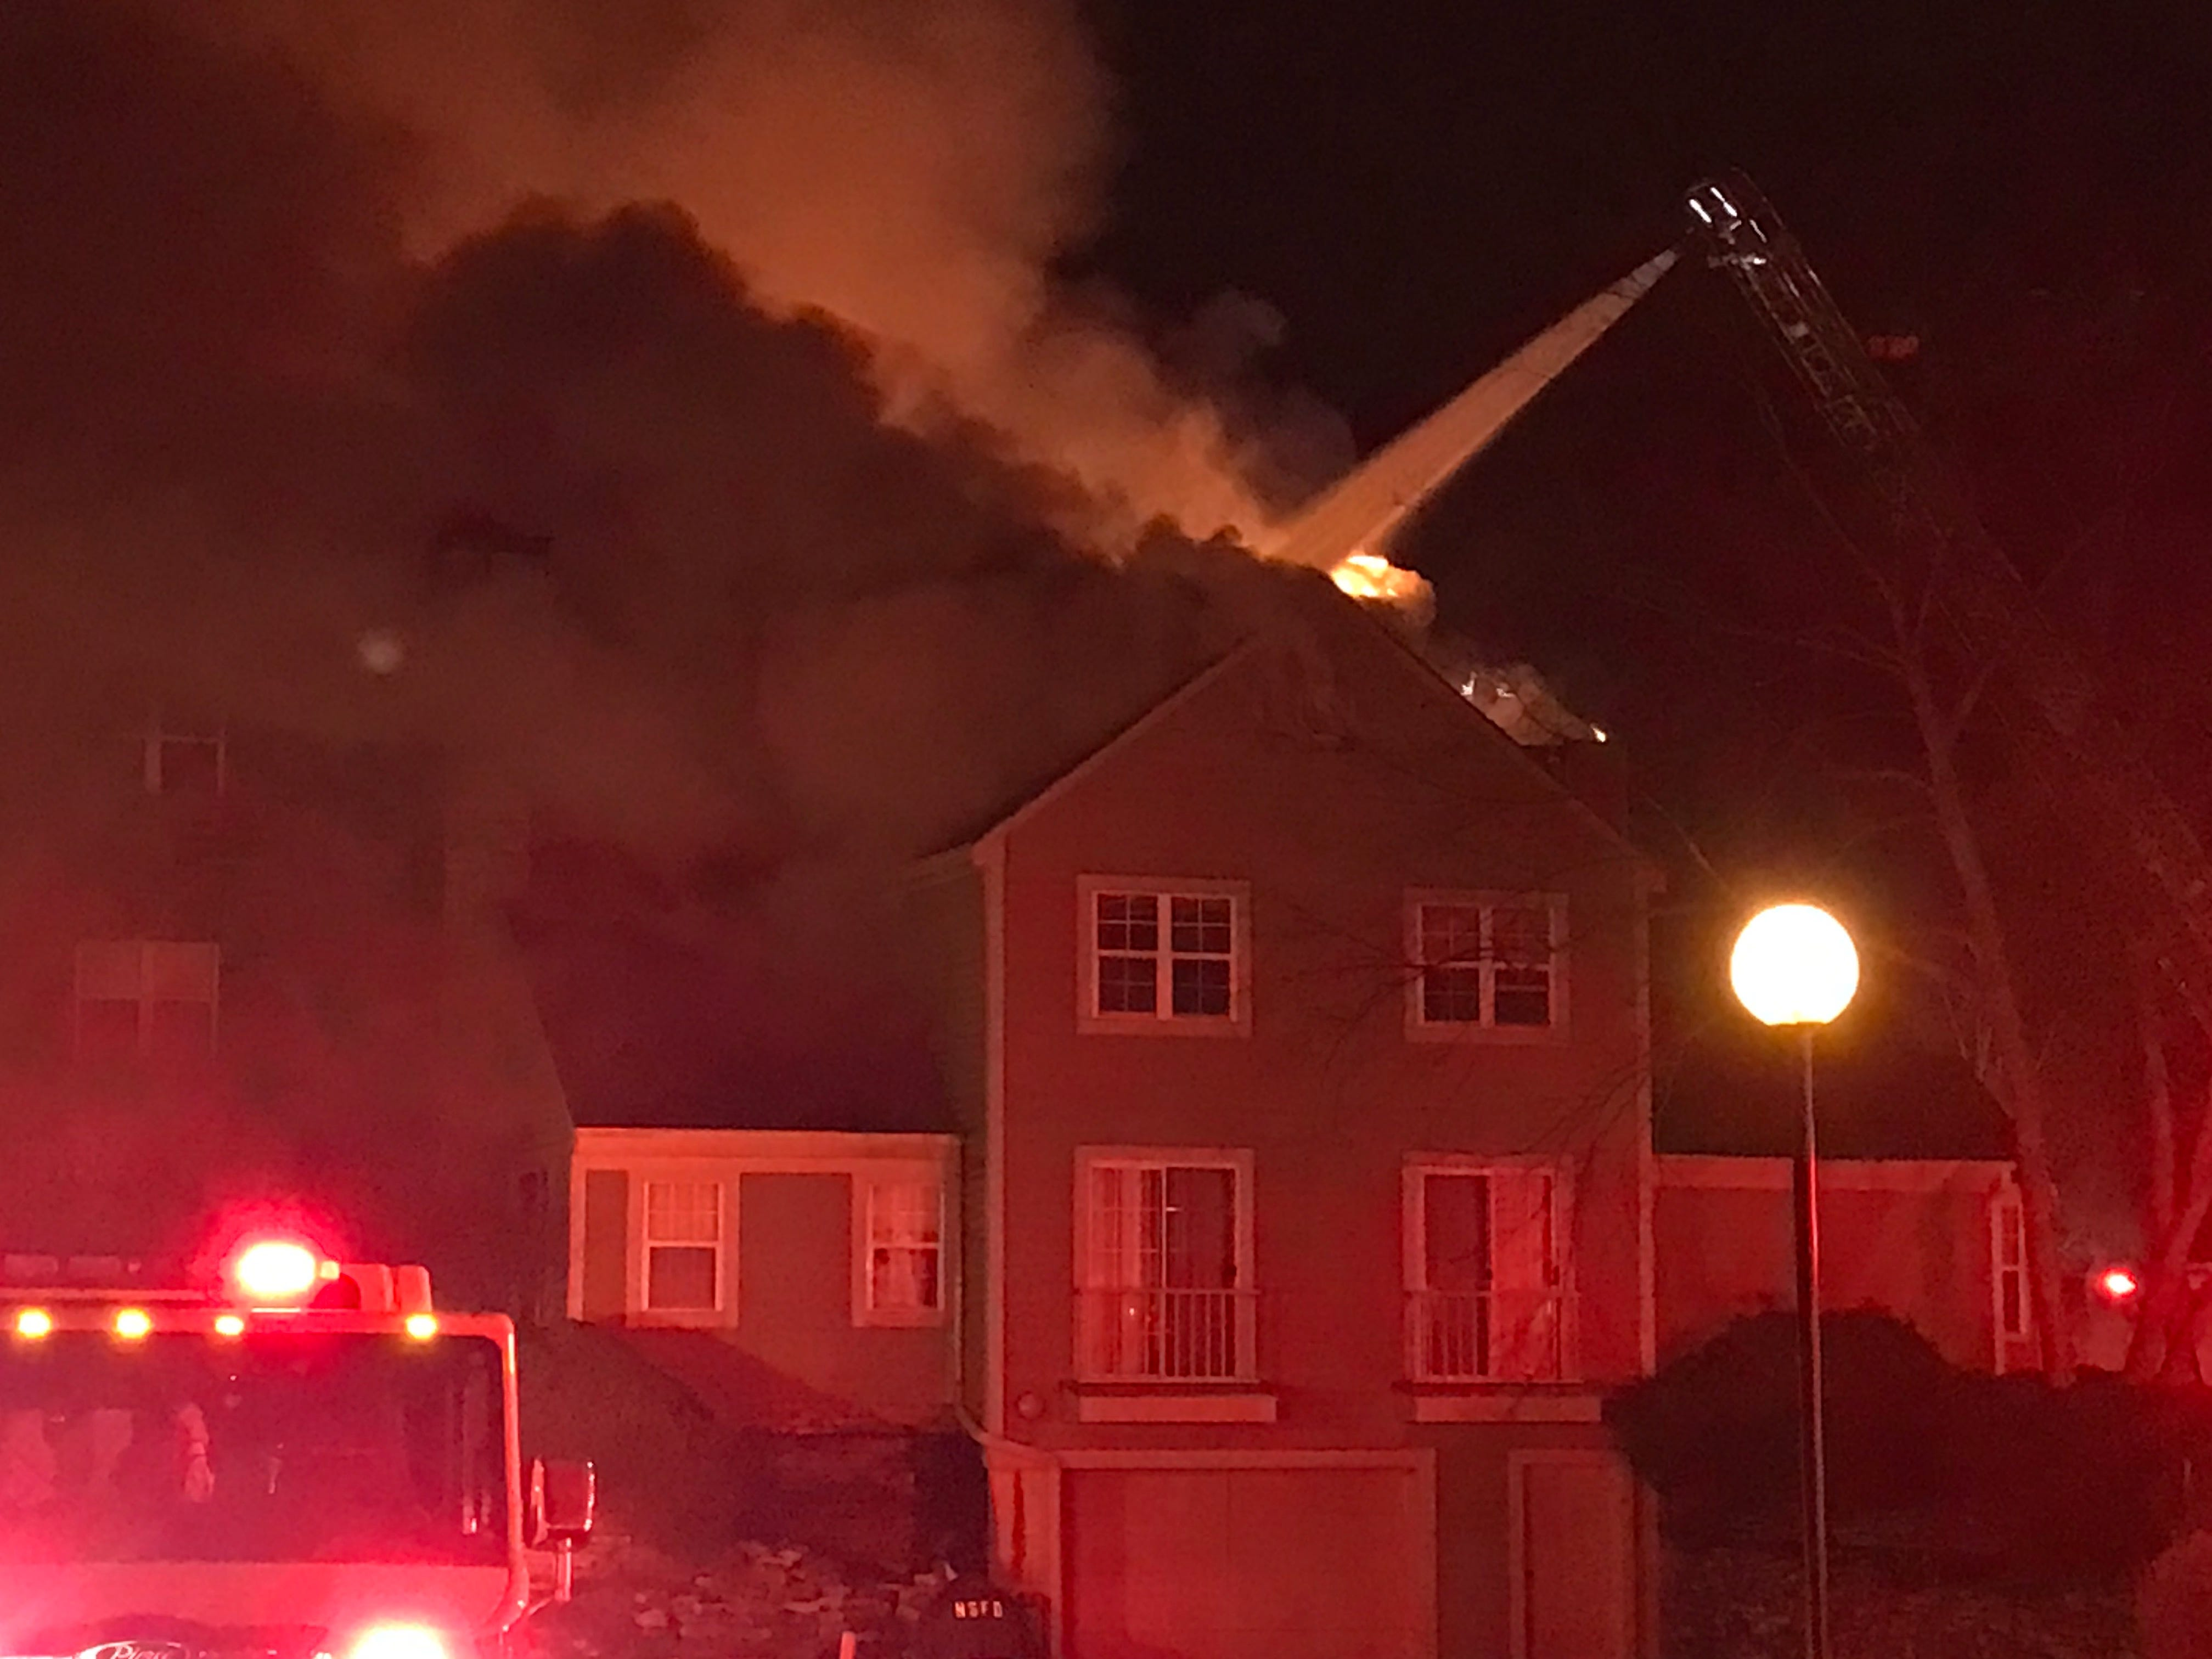 Minor injuries were reported at the scene of a three-alarm fire at the White Oaks apartment complex.